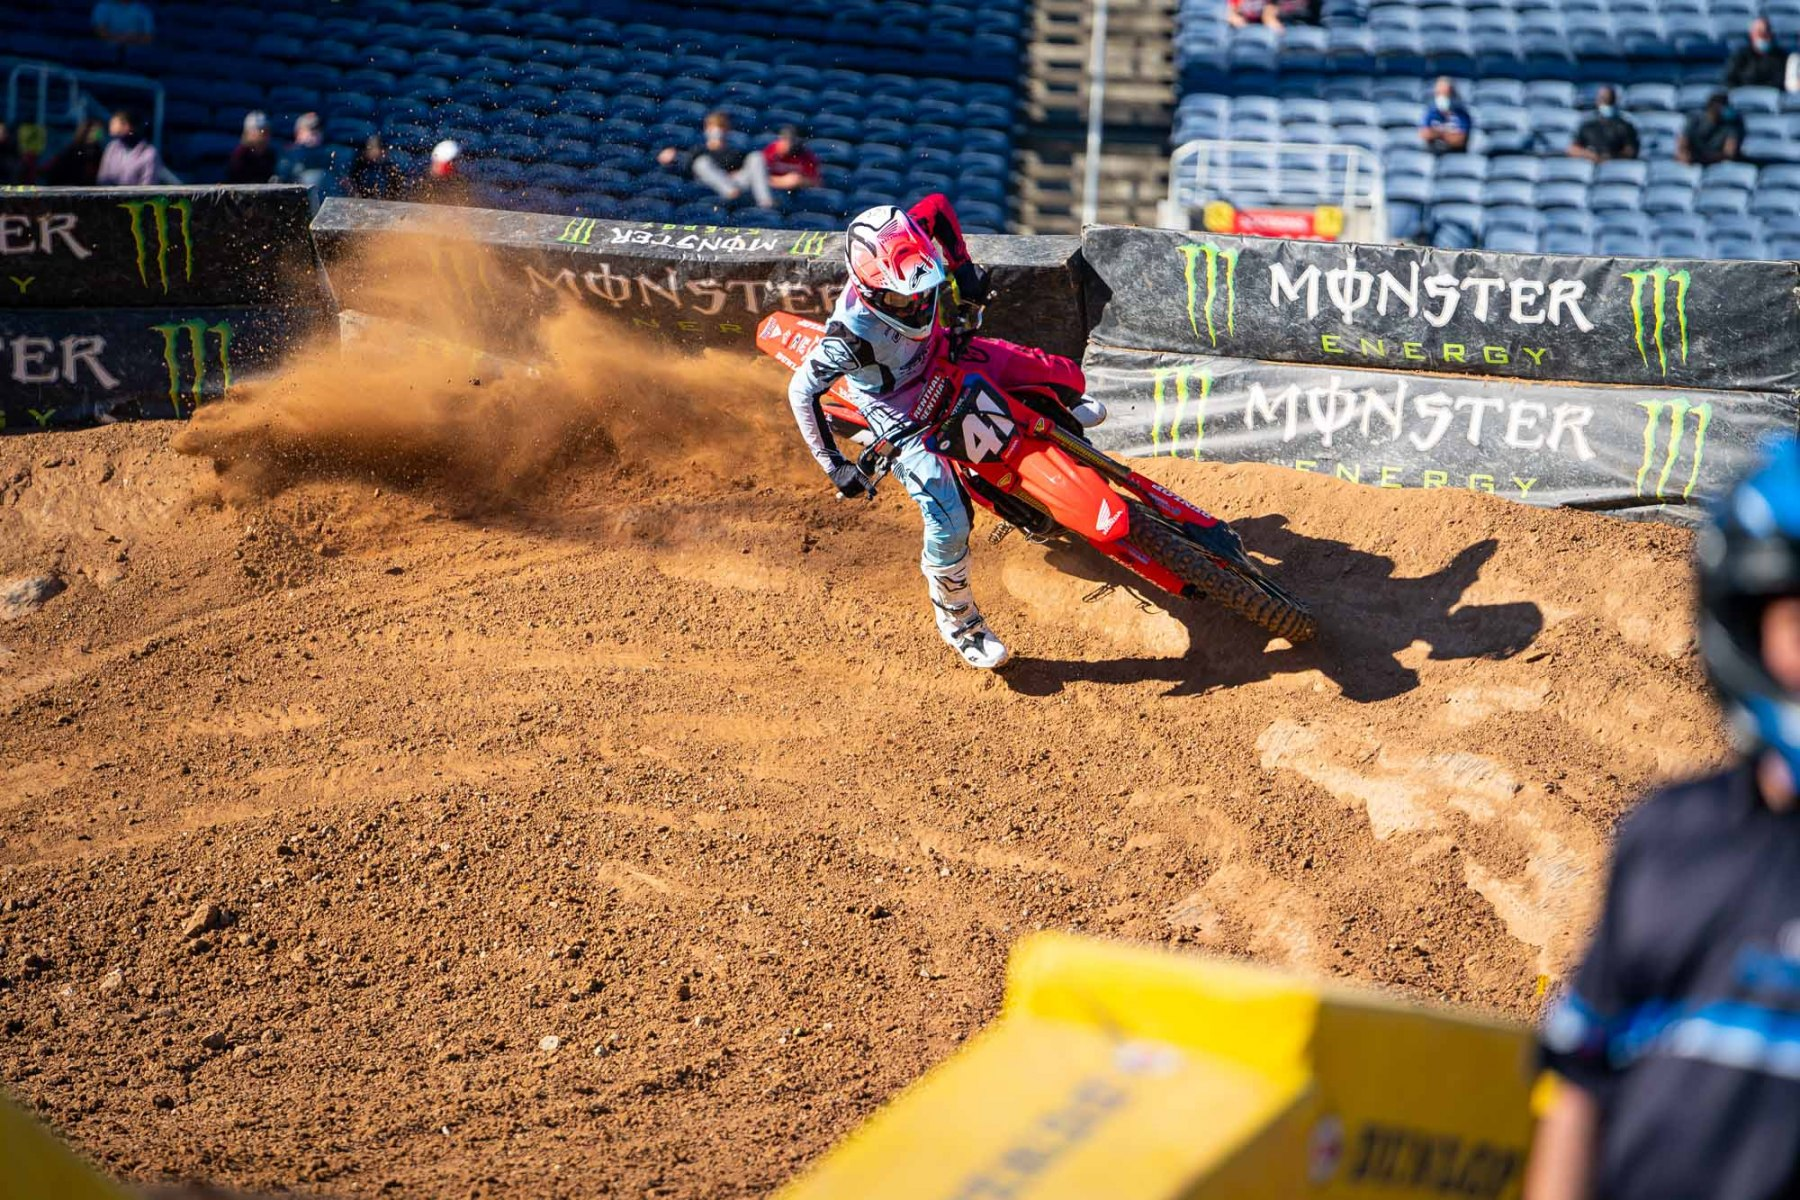 2021-ORLANDO-TWO-SUPERCROSS_KICKSTART_1513